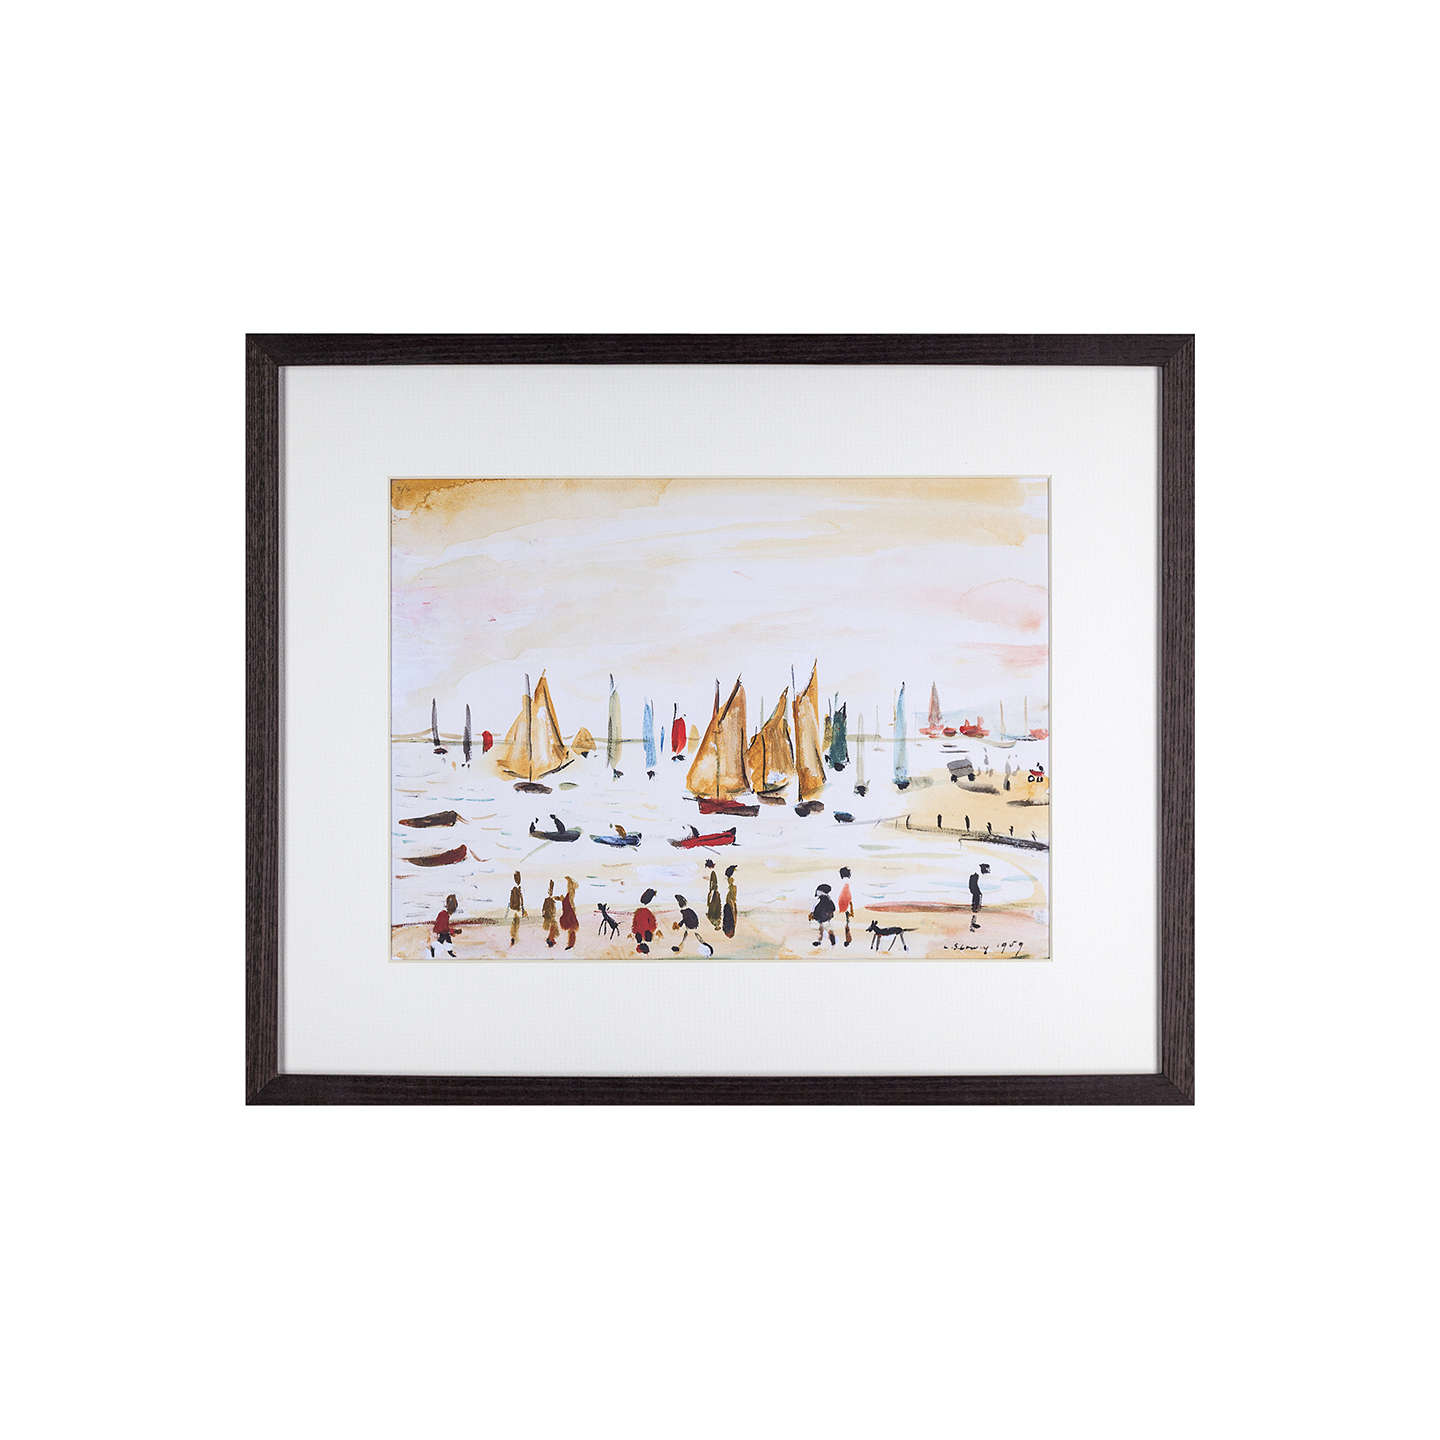 BuyL. S. Lowry - Yachts 1959 Framed Print, 42 x 34cm Online at johnlewis.com